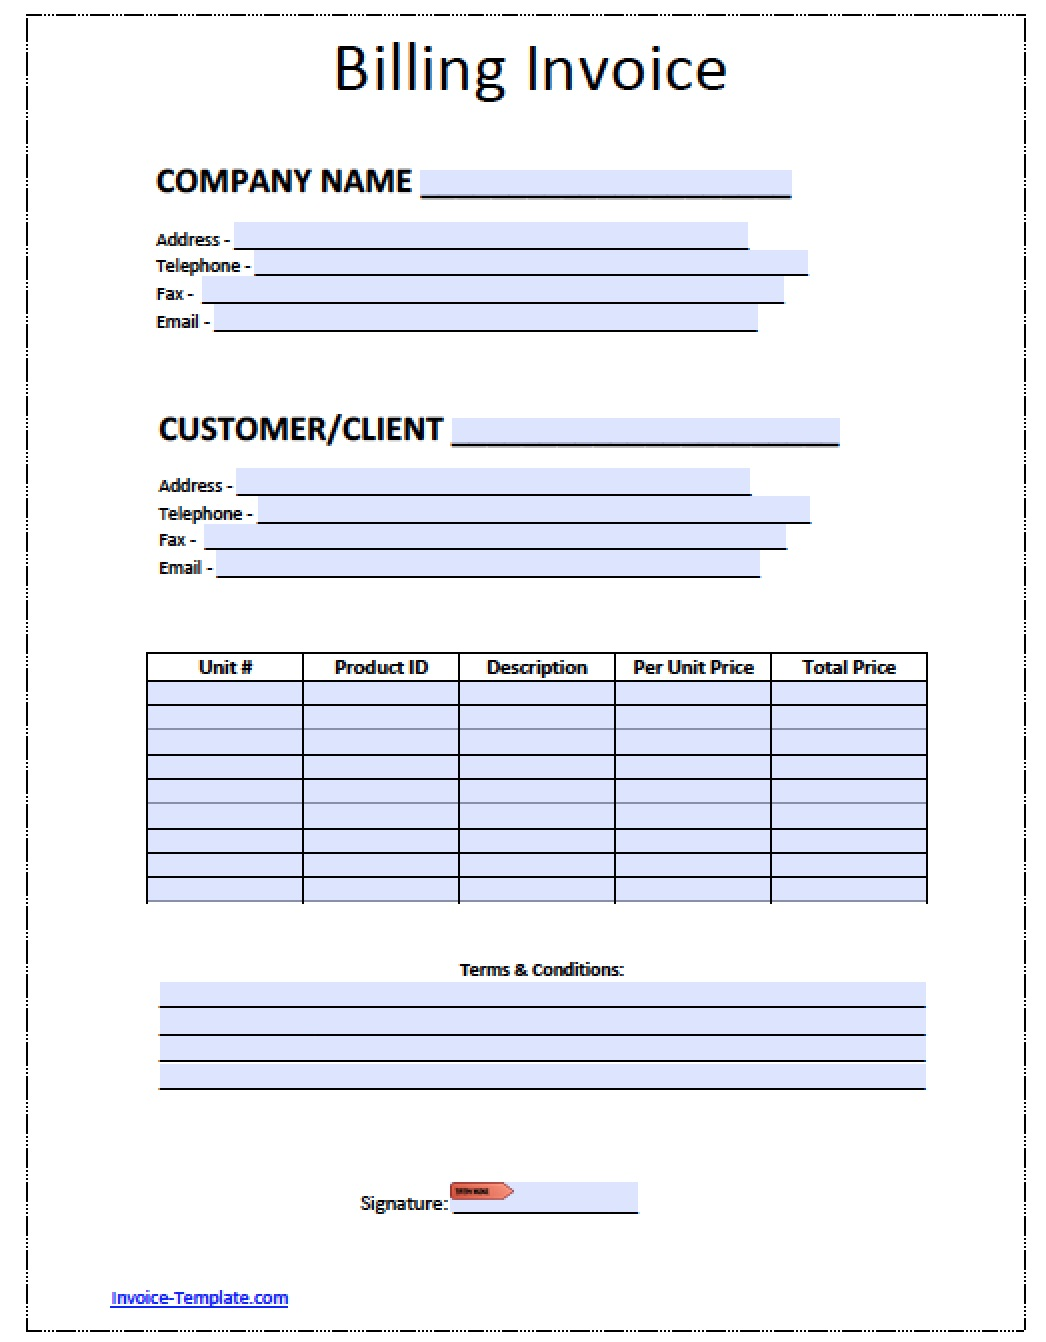 Darkfaderus  Inspiring Billing Invoice Invoices Faq U Cloudflare Support Billing  With Extraordinary Free Billing Invoice Template  Excel  Pdf  Word Doc  Billing With Amazing Quickbooks Convert Estimate To Invoice Also Resend Invoice In Addition Create Invoice Online Free And Medical Invoice Template Free As Well As When Is A Tax Invoice Required Additionally Invoice Template Microsoft From Happytomco With Darkfaderus  Extraordinary Billing Invoice Invoices Faq U Cloudflare Support Billing  With Amazing Free Billing Invoice Template  Excel  Pdf  Word Doc  Billing And Inspiring Quickbooks Convert Estimate To Invoice Also Resend Invoice In Addition Create Invoice Online Free From Happytomco